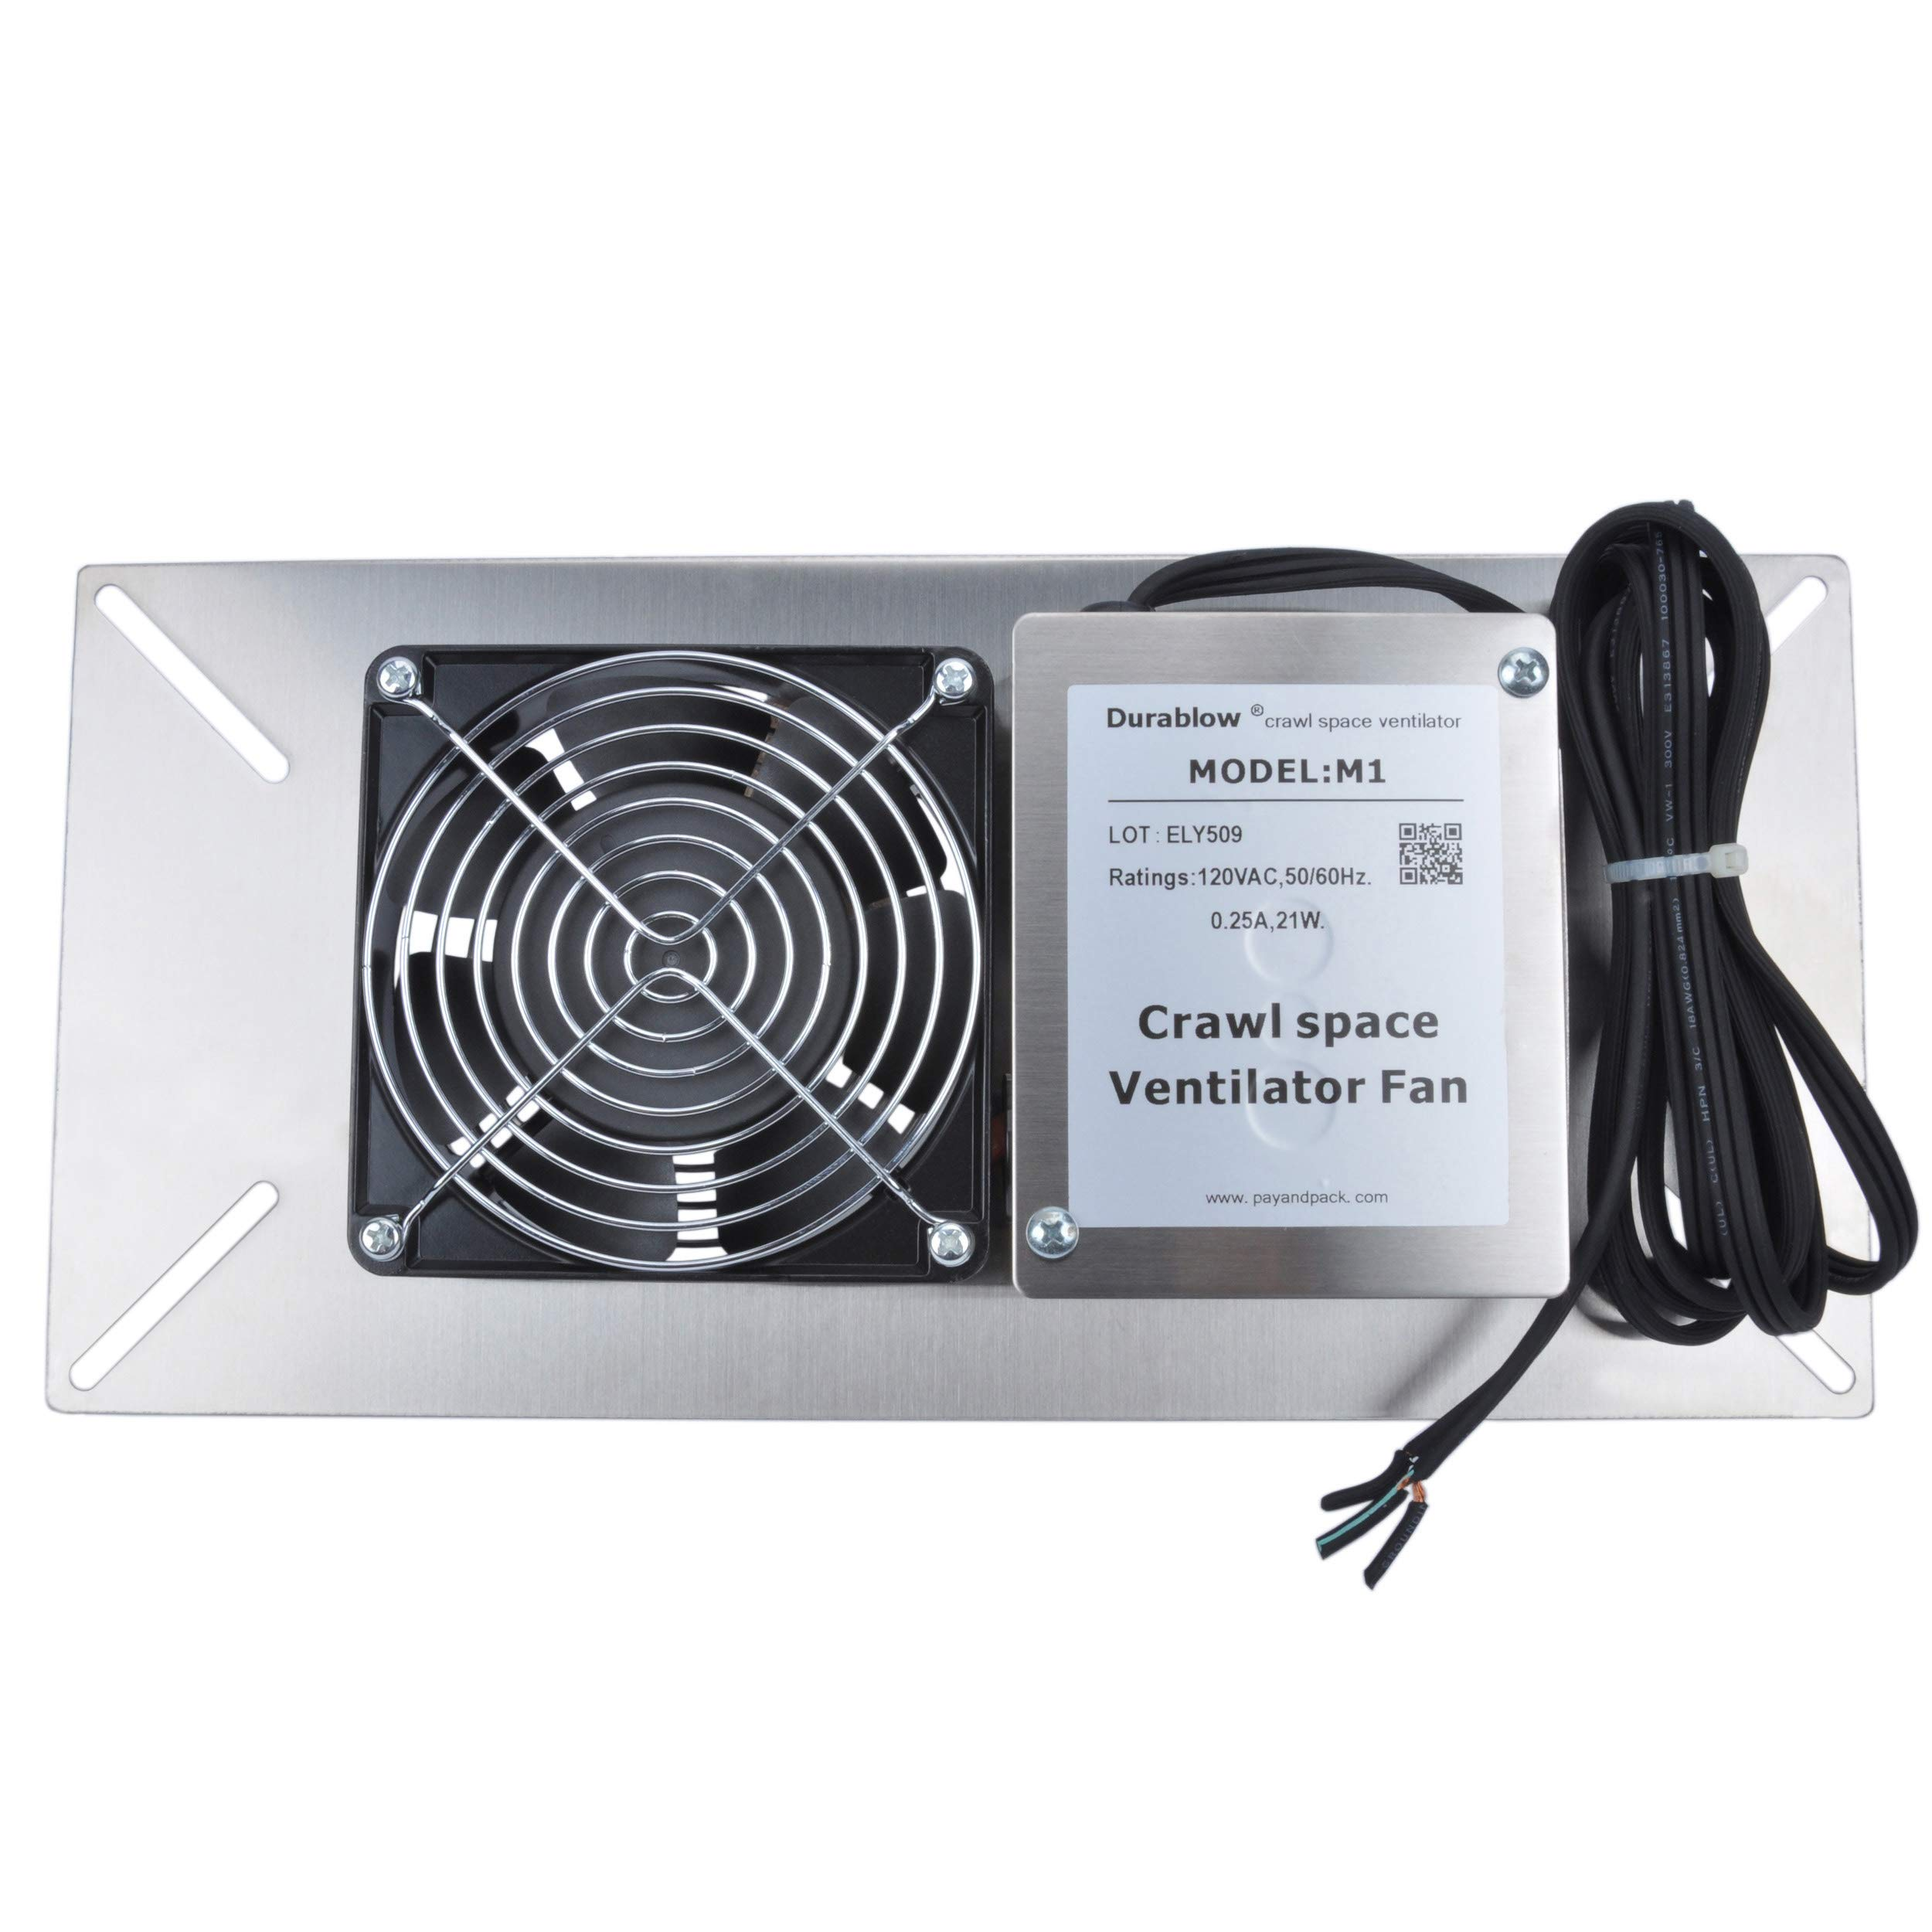 Durablow Stainless Steel 304 Crawl Space Foundation Fan Ventilator MFB M1 by Durablow (Image #9)